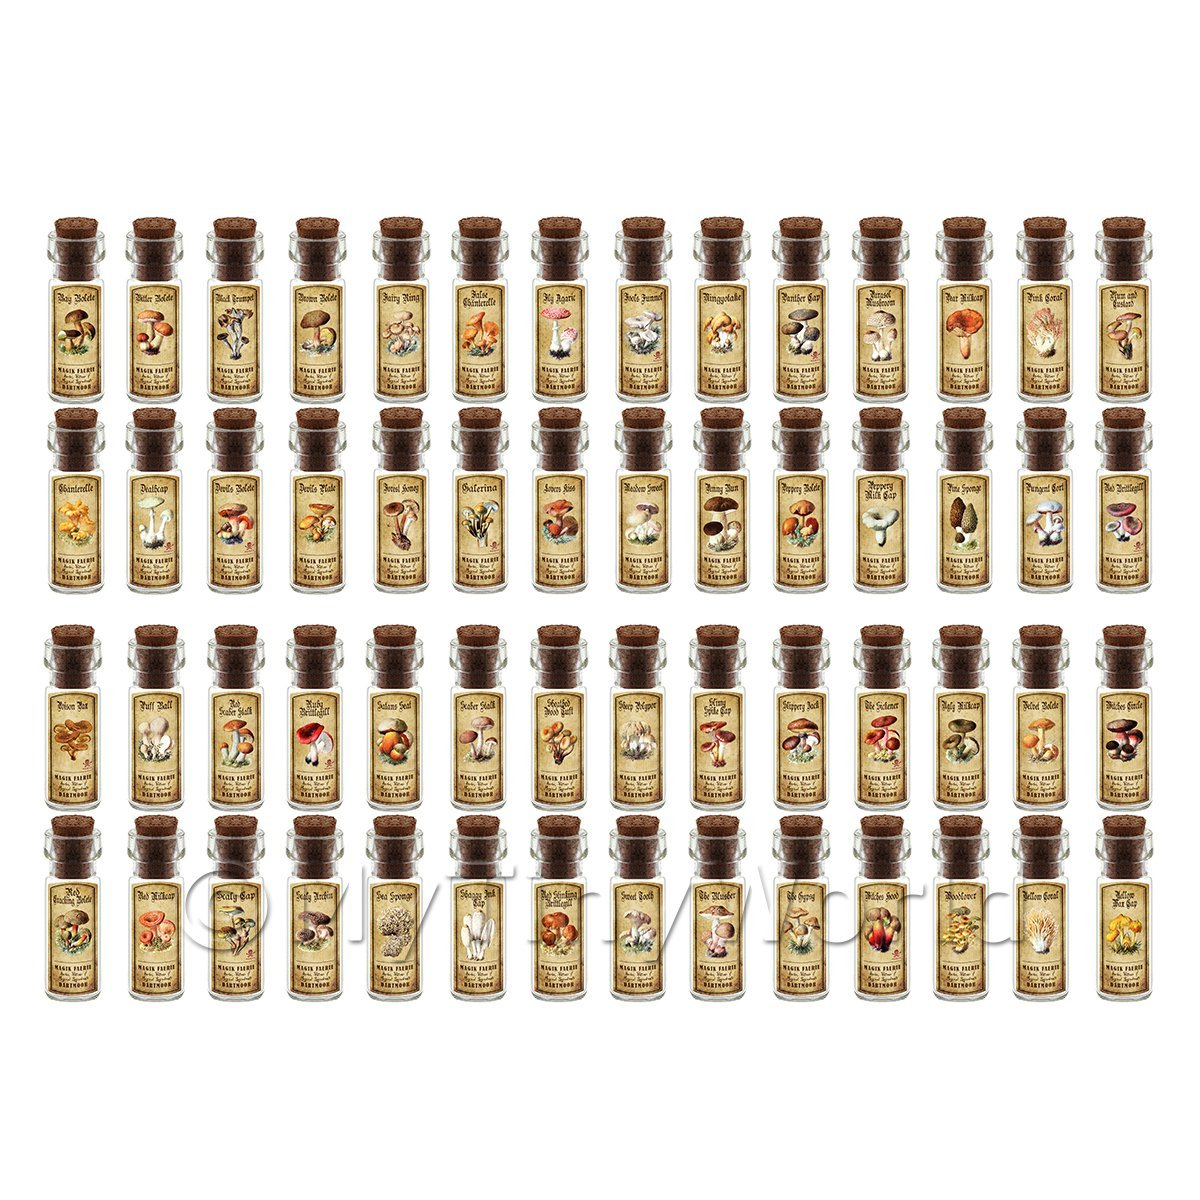 Dolls House Apothecary Set of 56 Fungi / Toadstall Bottles And Colour Labels